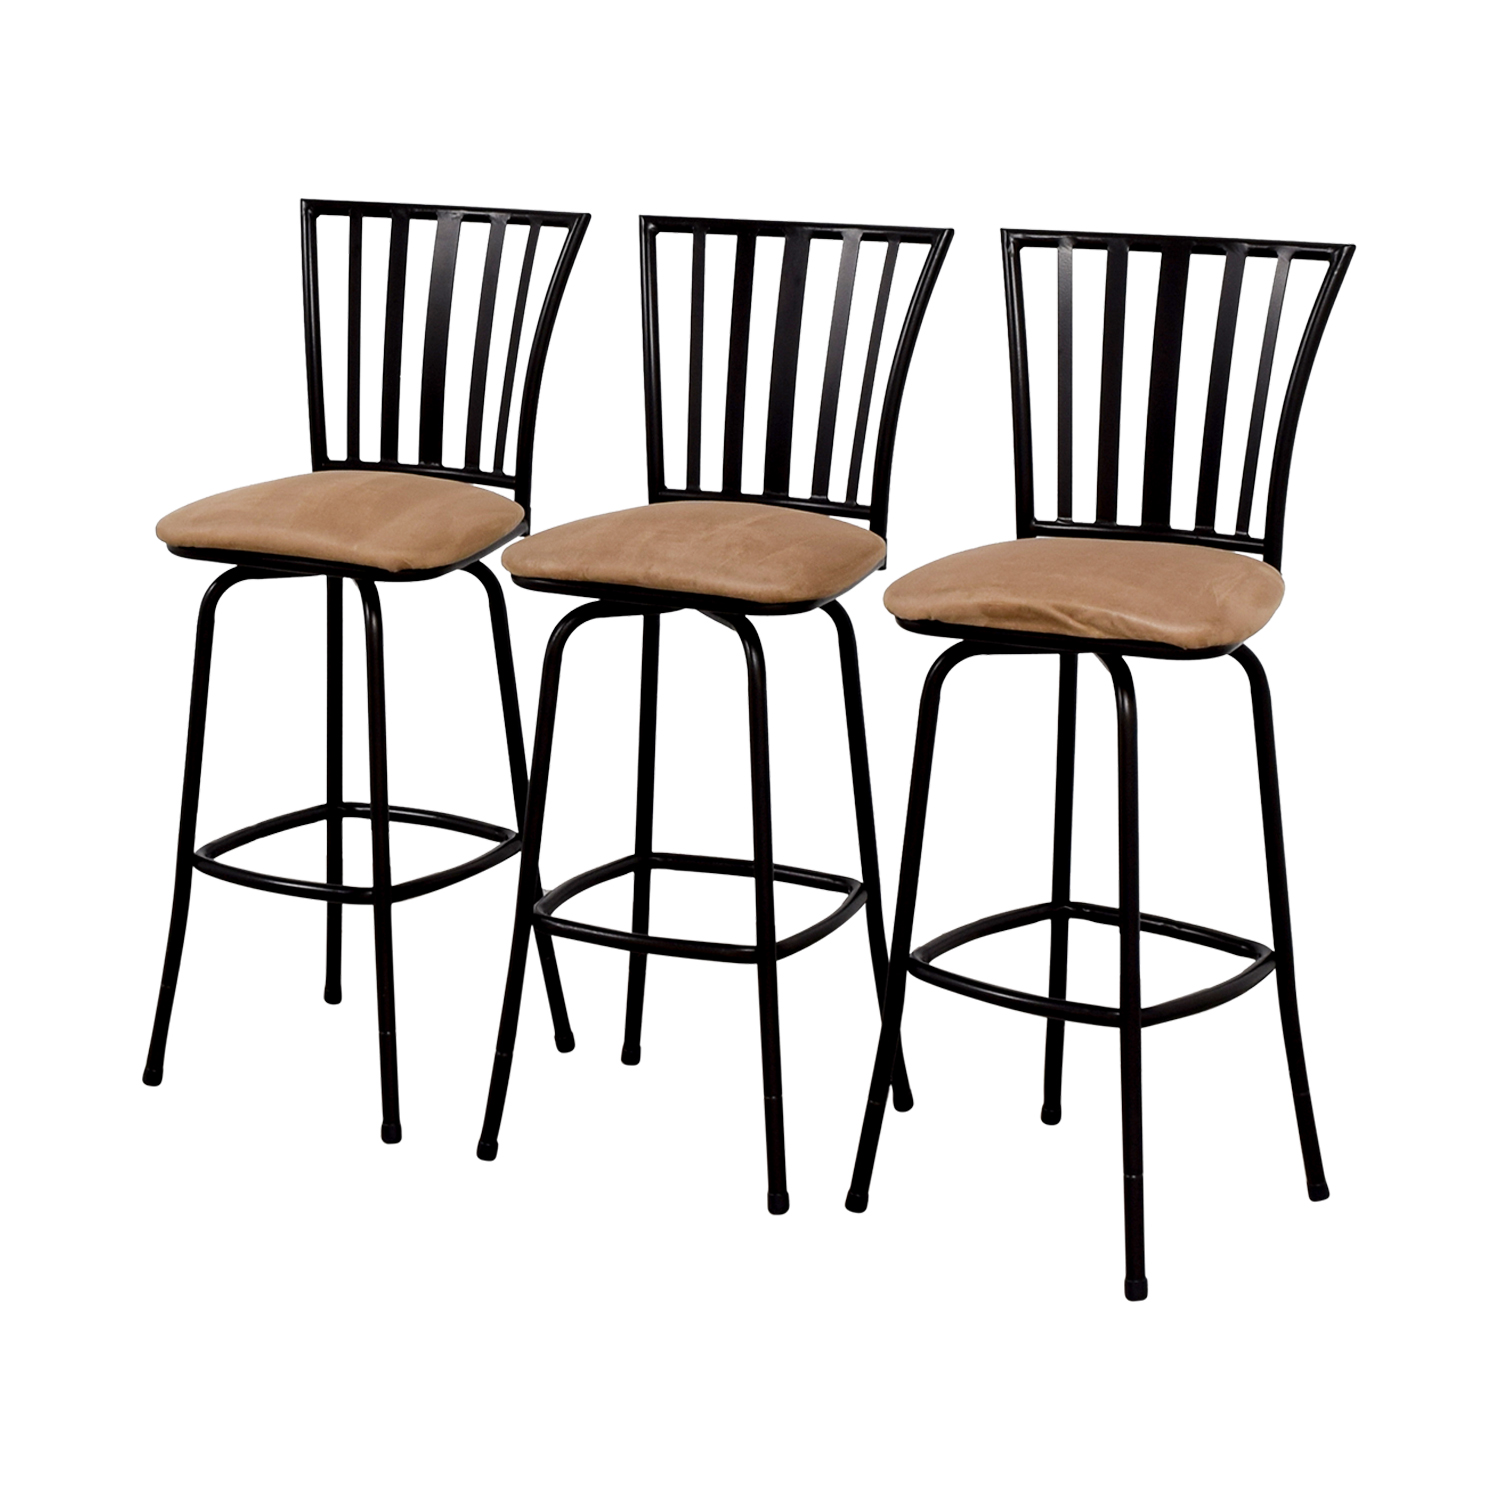 Tan Upholstered Stools with Black Frame / Stools